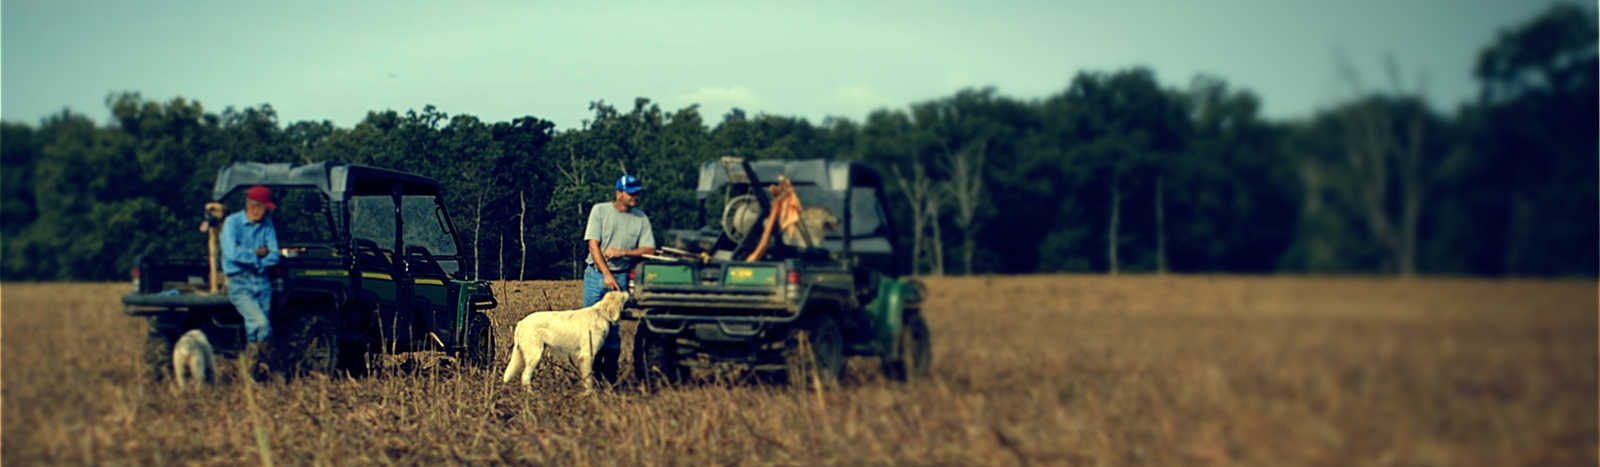 A couple of farmers and their dog in a field